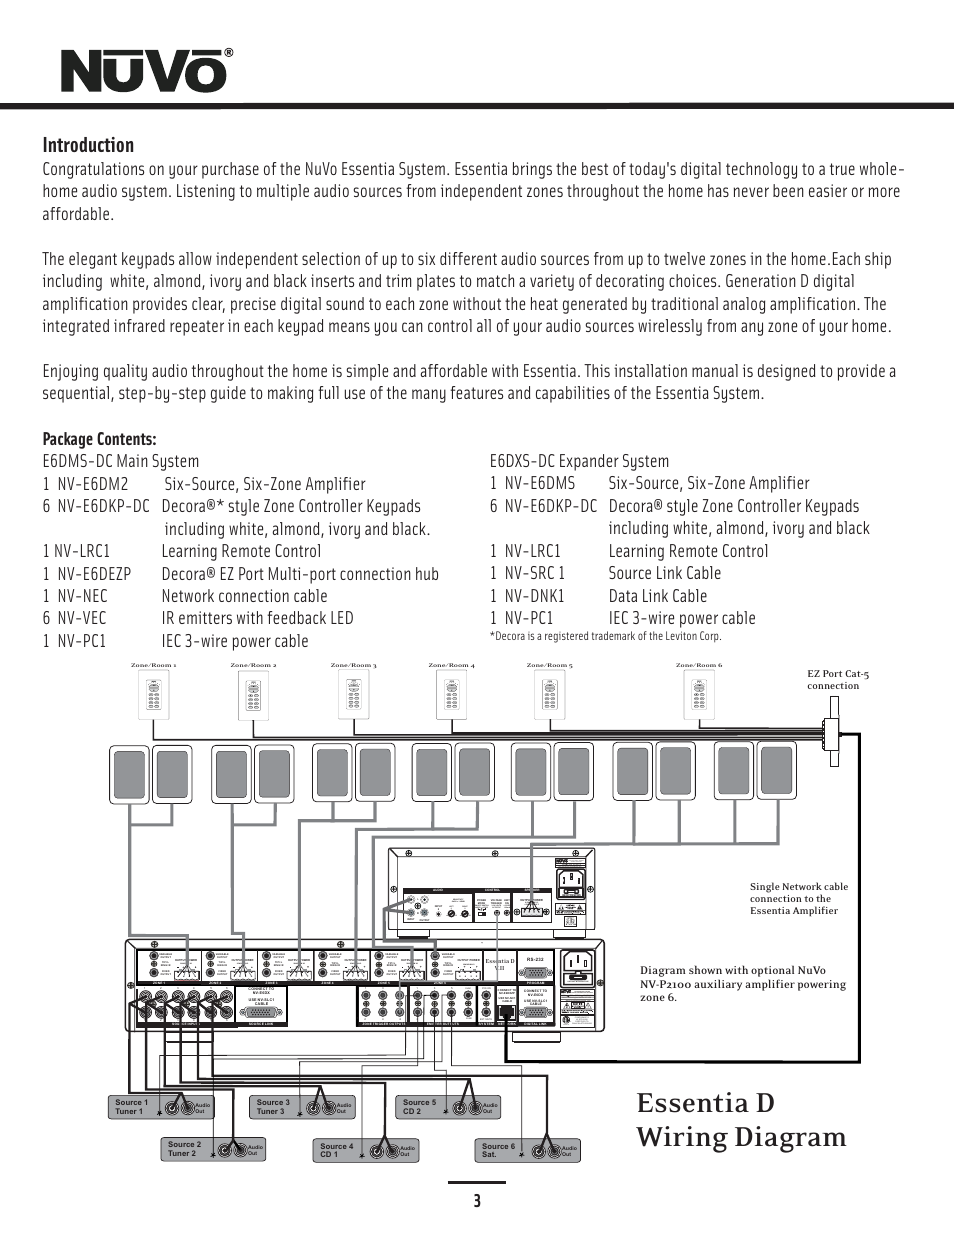 Essentia D Wiring Diagram Introduction 30 Volts Ac Or Dc On Off Whole Home Audio Switch Nuvo Nv E6dms User Manual Page 4 29